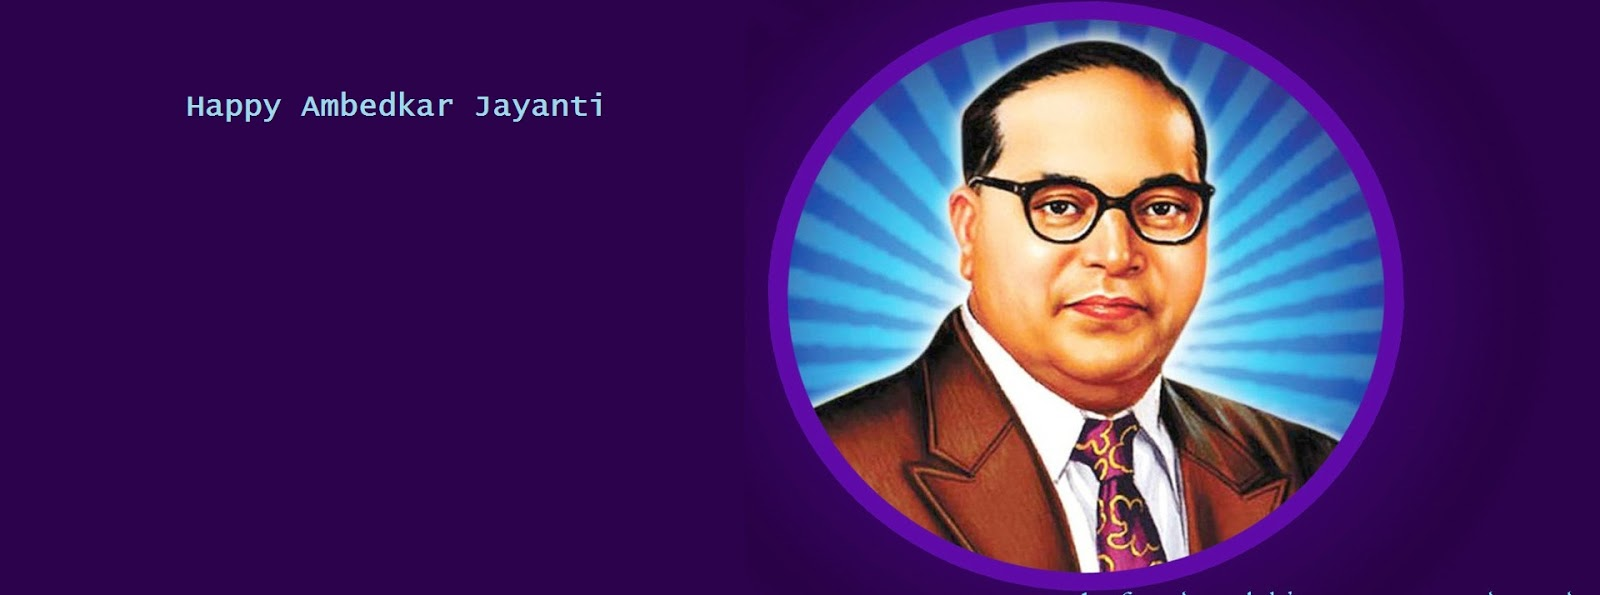 Babasaheb Ambedkar Jayanti Images Hd The Galleries Of Hd Wallpaper